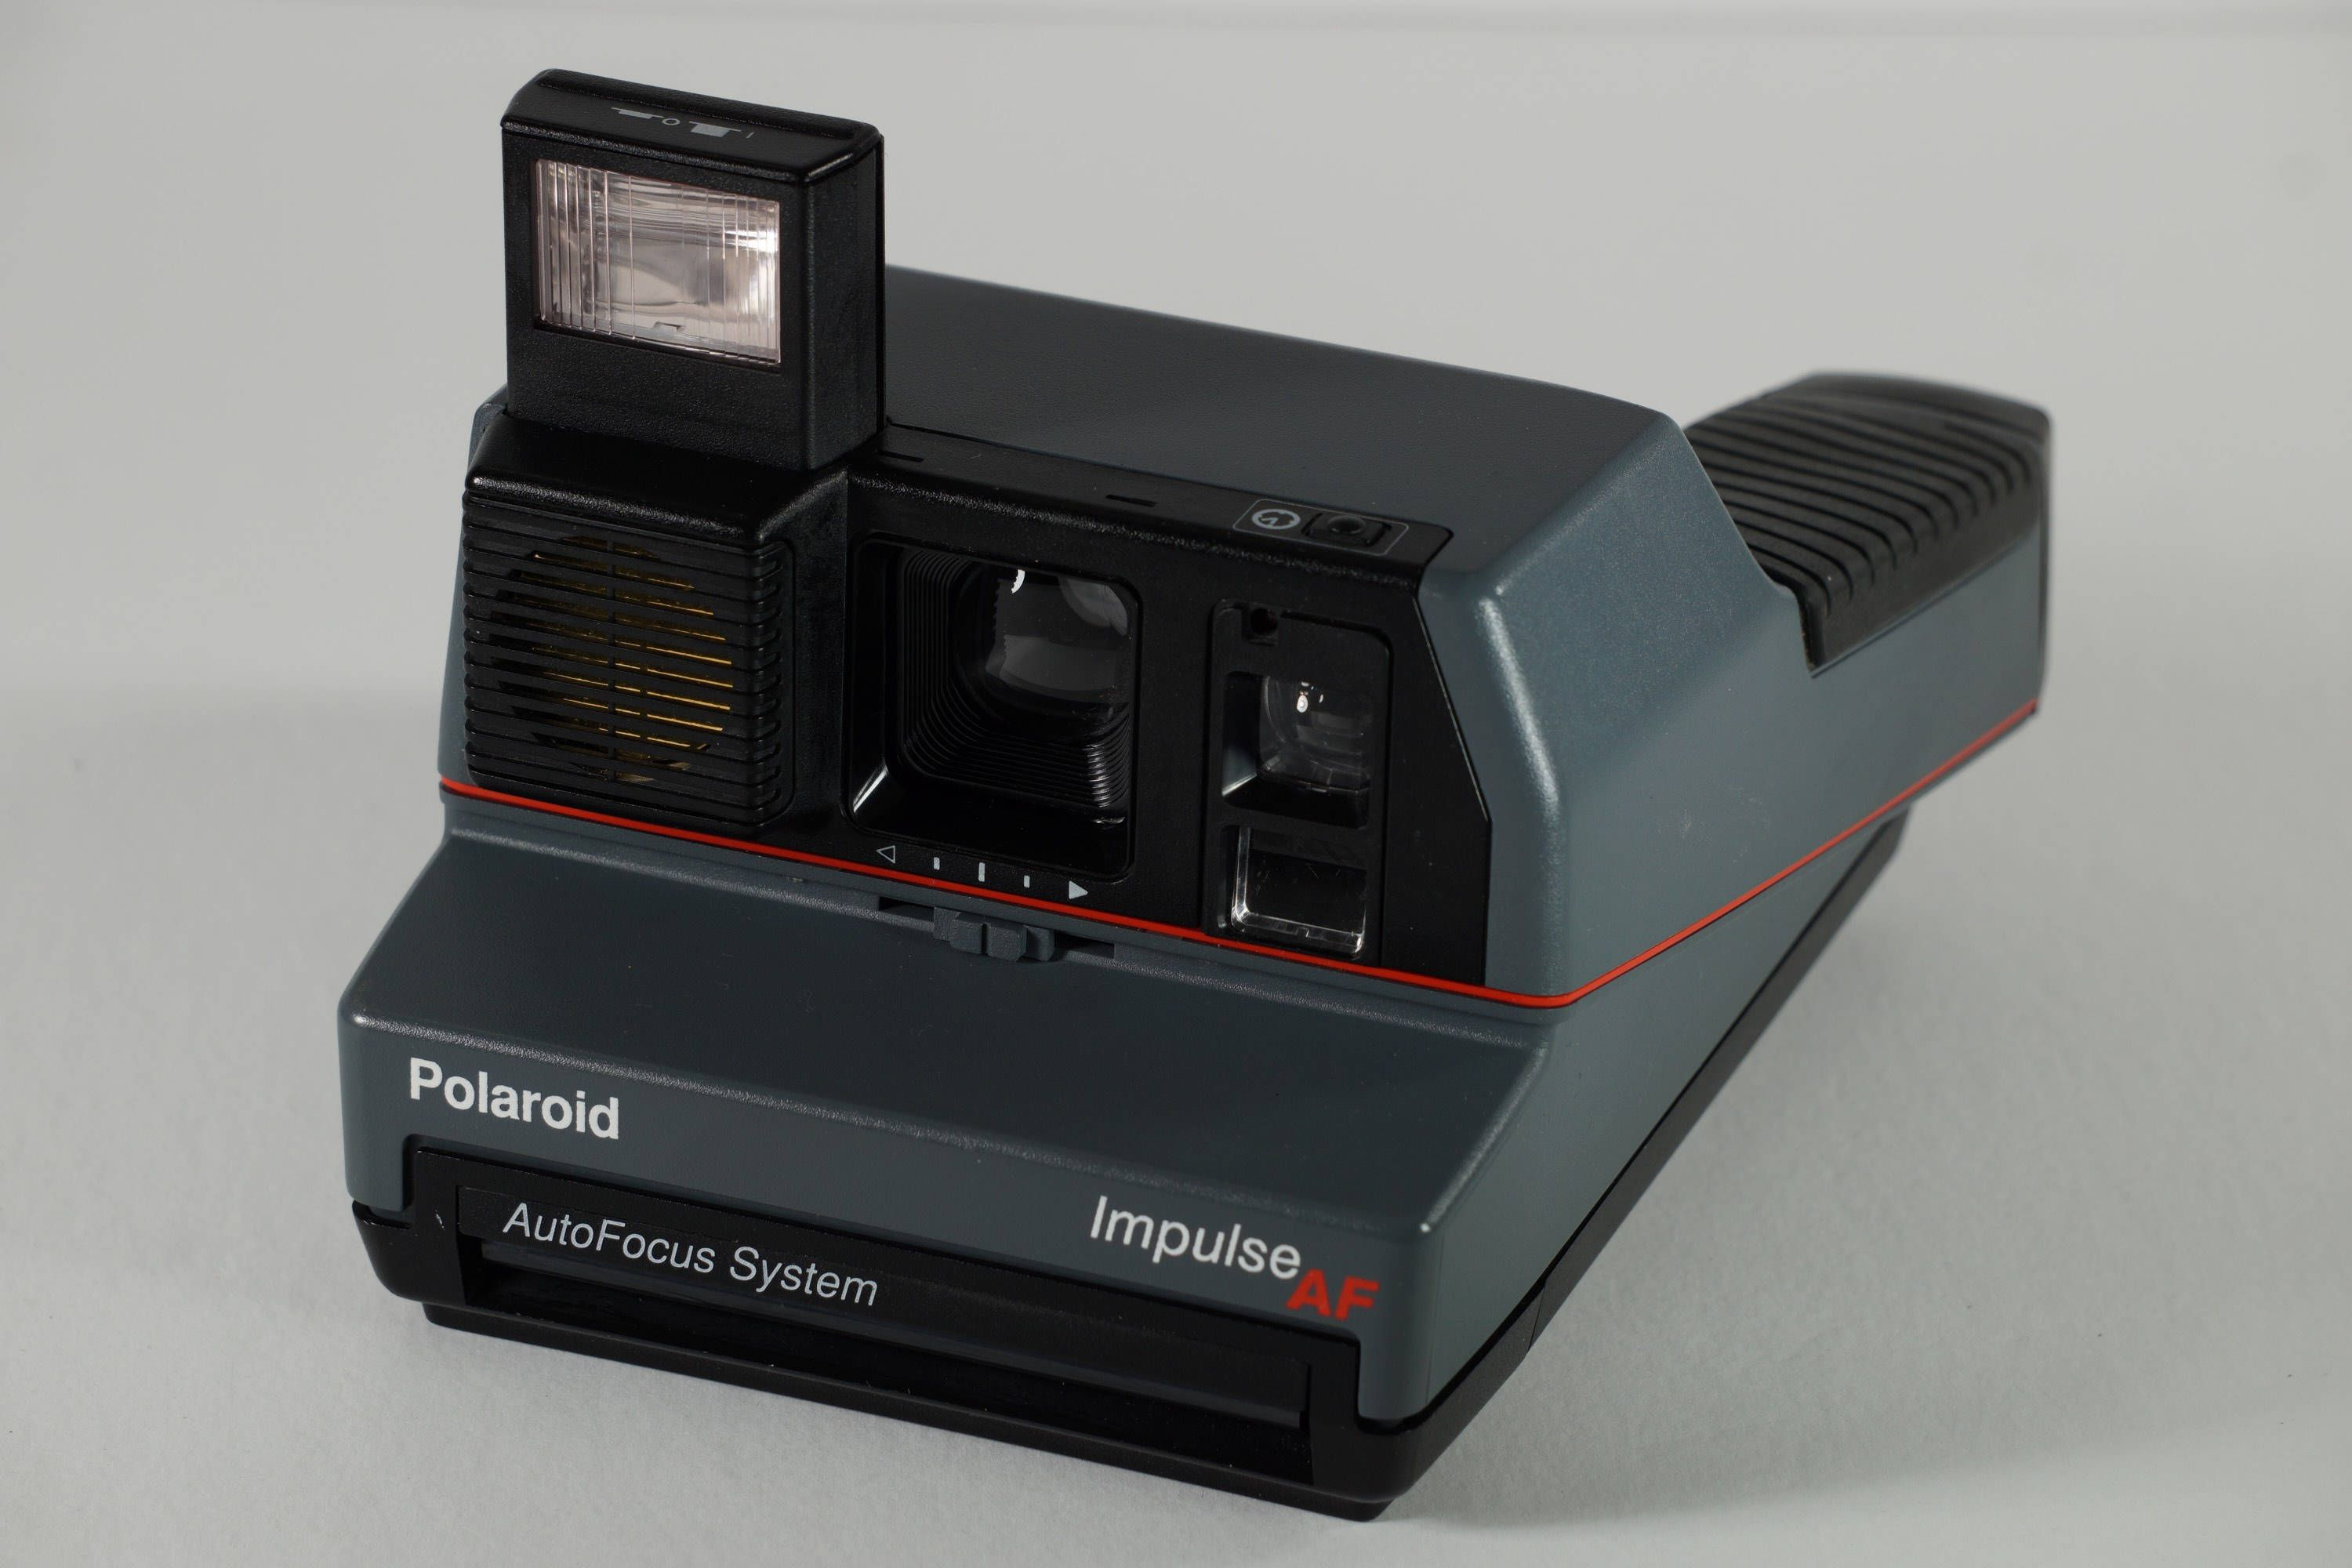 Polaroid Impulse Af Instant Camera Autofocus System For 600 Instant Film With Case And Manual By Cgarcrafts O Instant Camera Instant Film Vintage Electronics